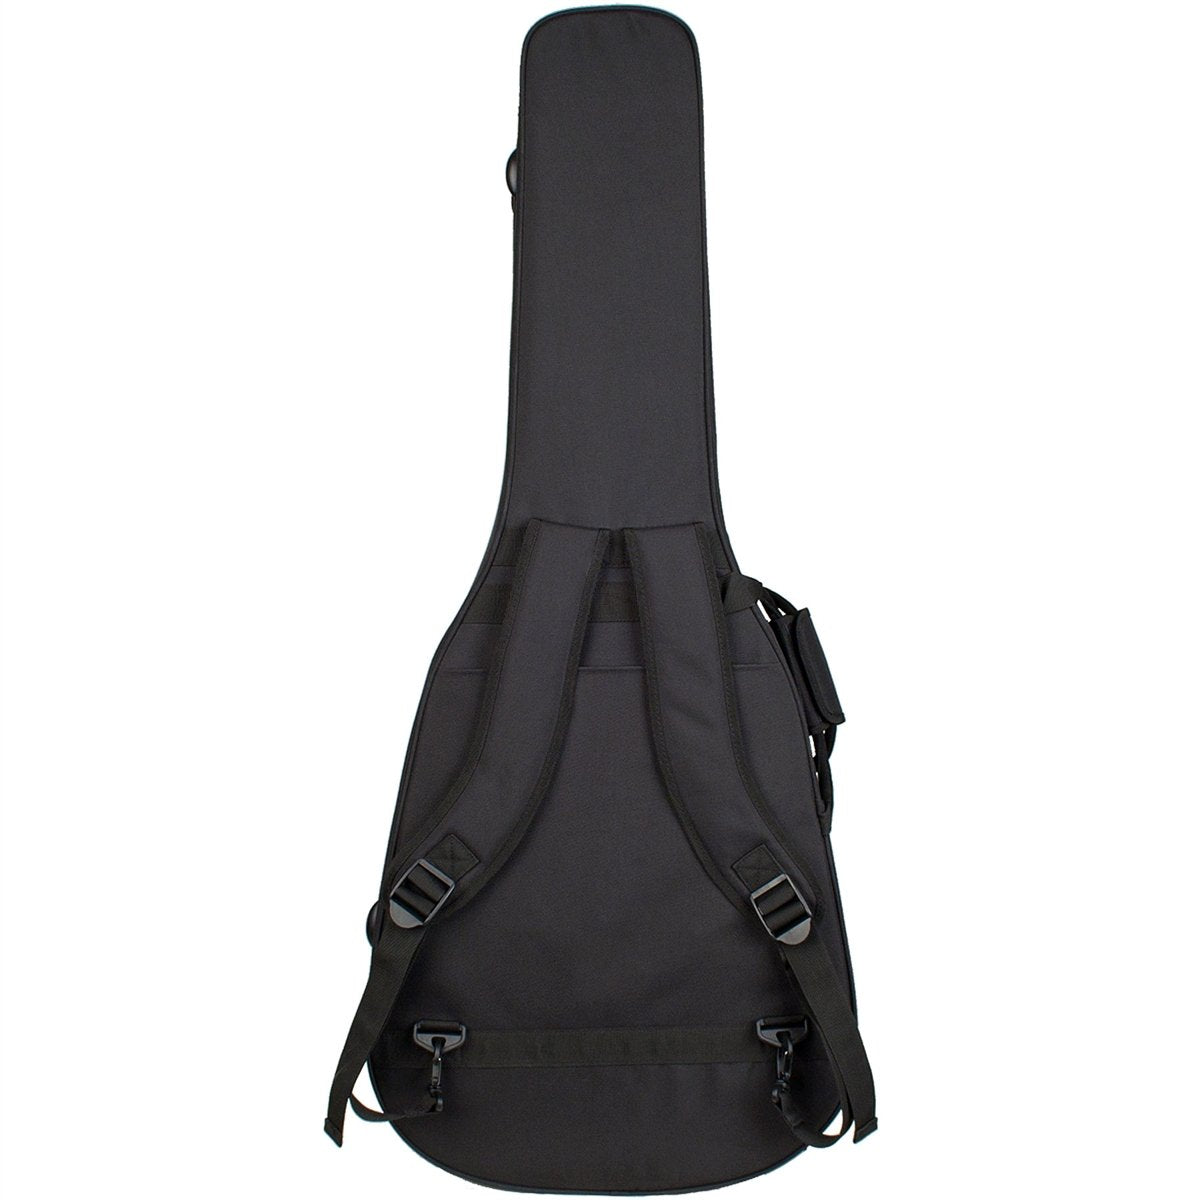 Protec - Dreadnought Guitar MAX Case-Accessories-Protec-Music Elements